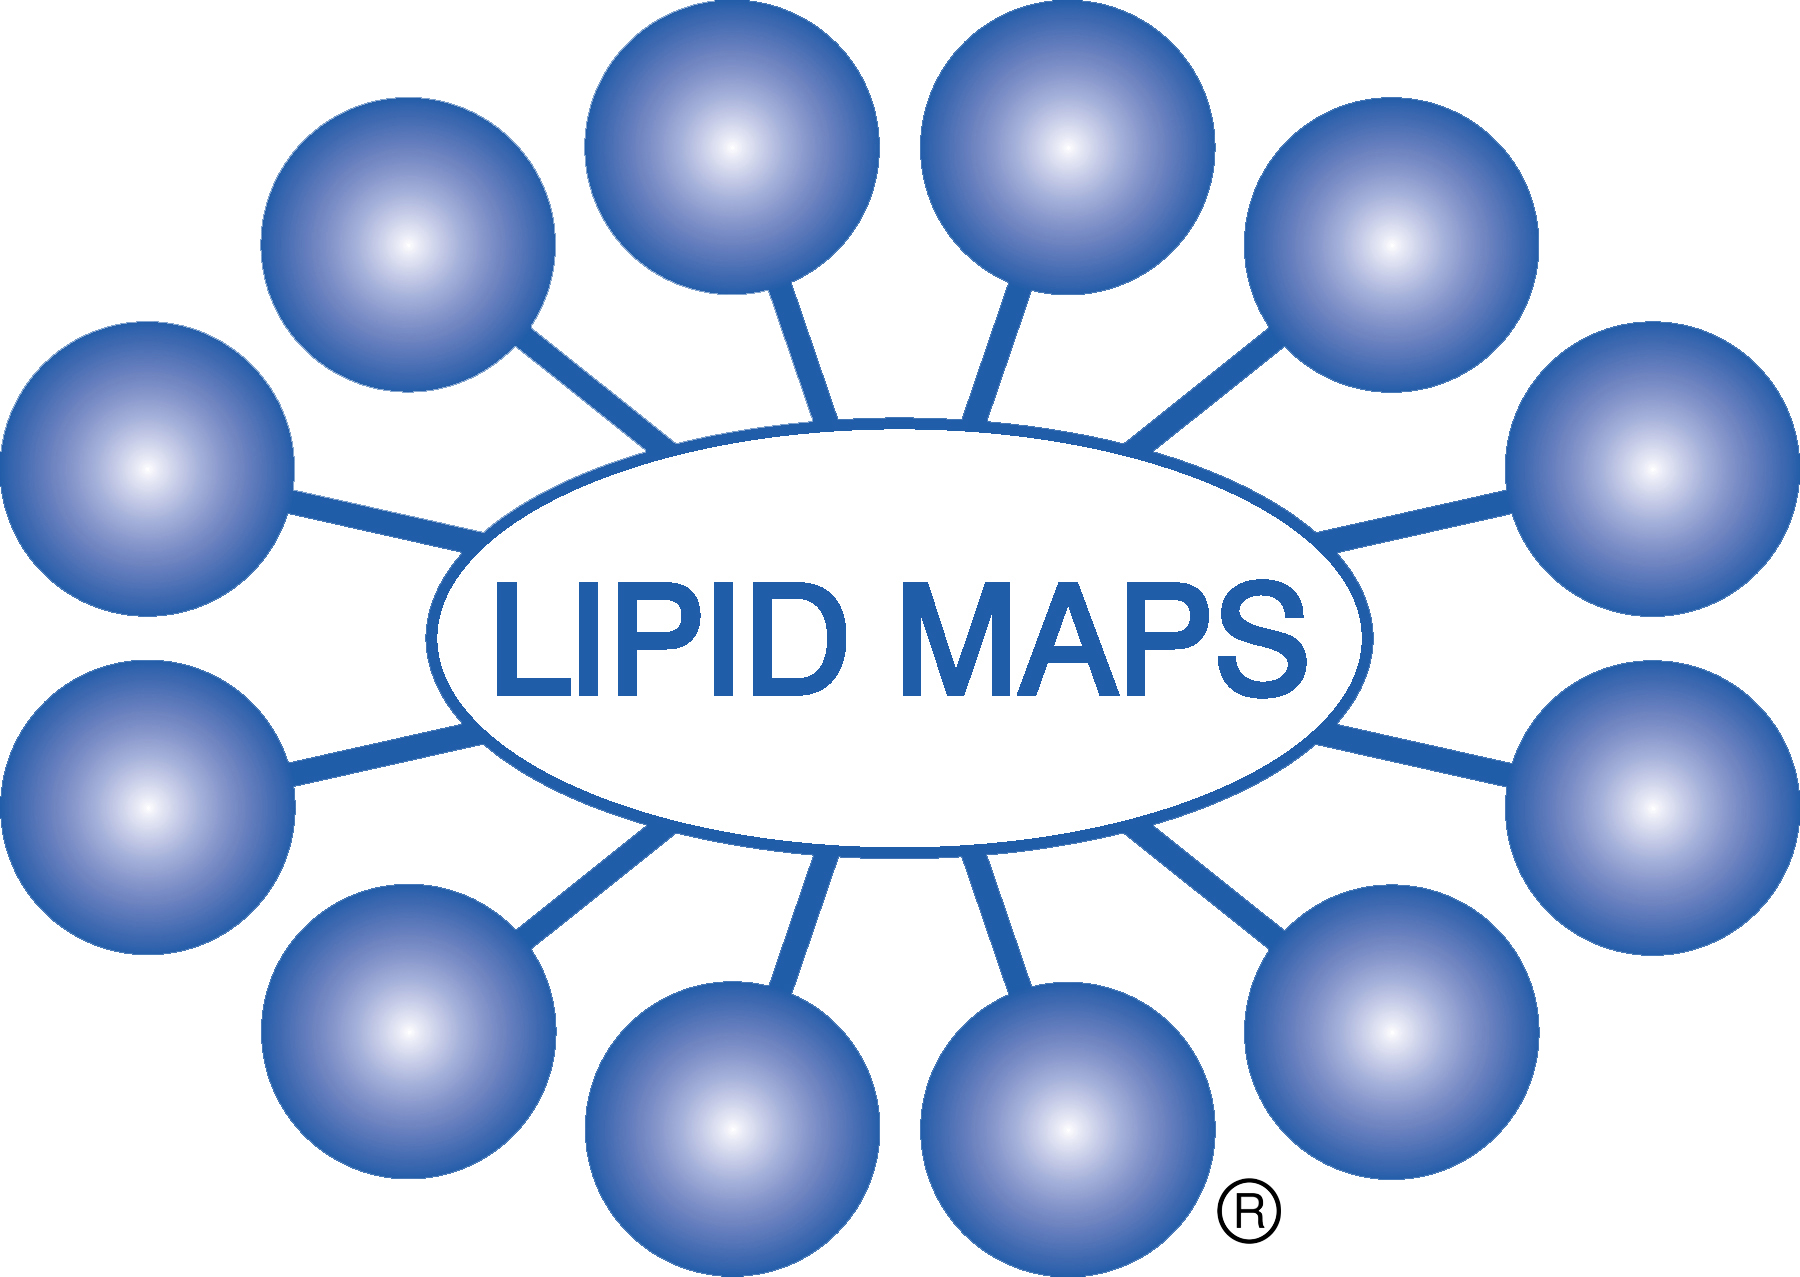 LIPID MAPS Lipidomics Gateway Home